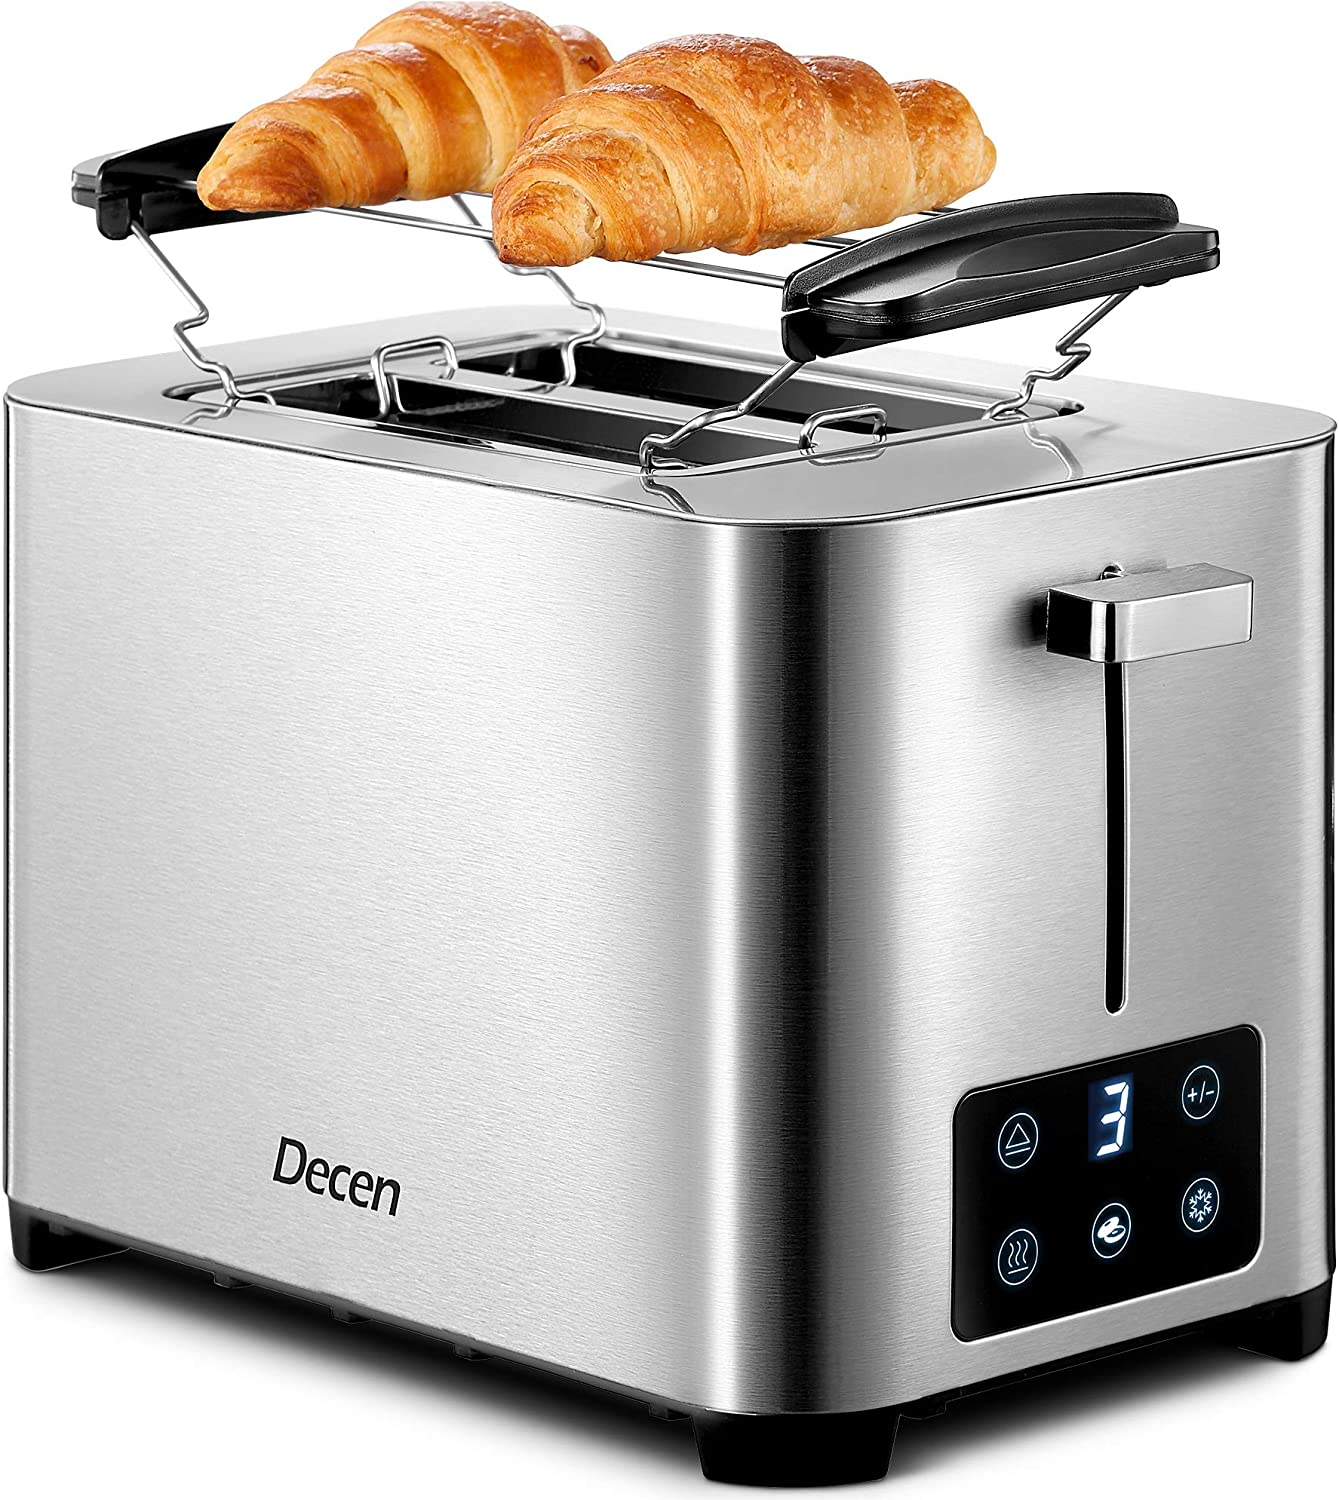 Toaster 2 Slice, DECEN Stainless Steel Toaster with Touch LCD Display (6 Toasting Settings), 2 Extra-Wide Slots, Bagel, Cancel, Defrost, and Reheat Function, Slide Out Crumb Tray, Silver